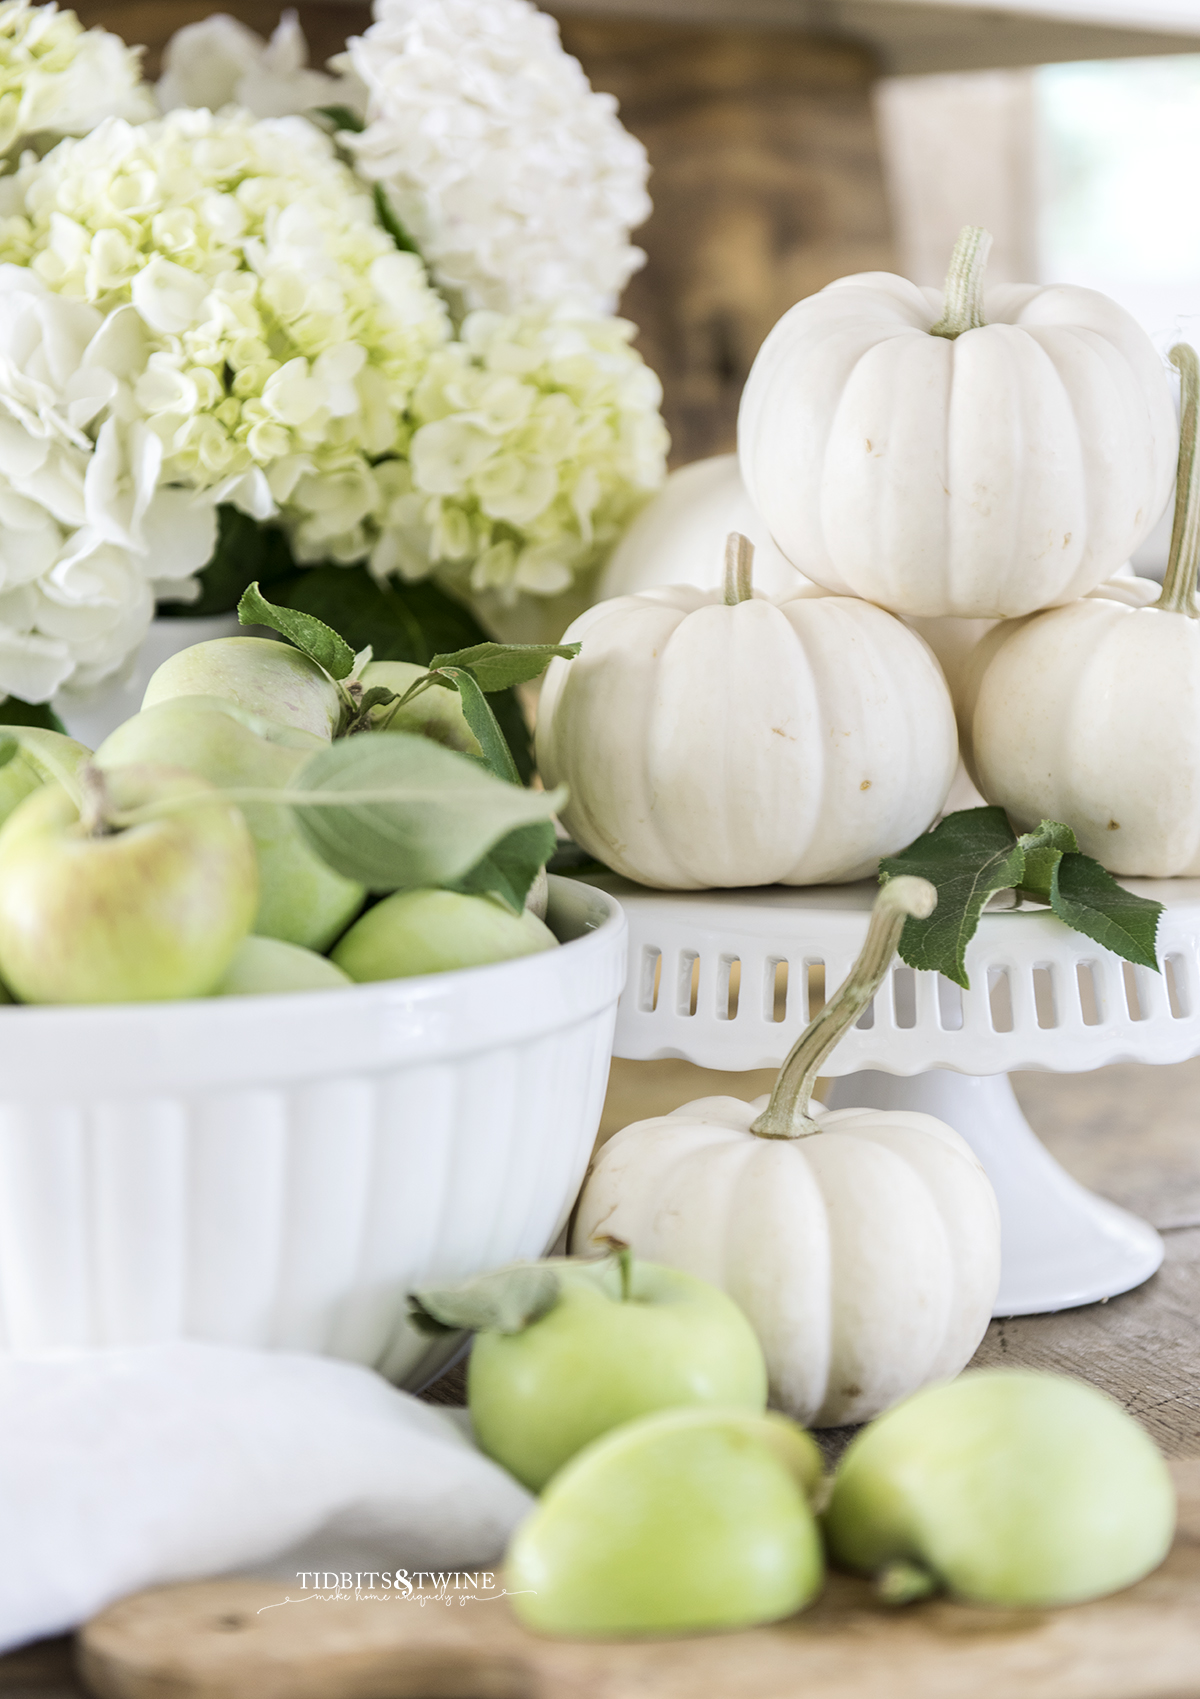 fall kitchen vignette of white bowl full of green apples with white pumpkins on a cake stand and white hydrangea